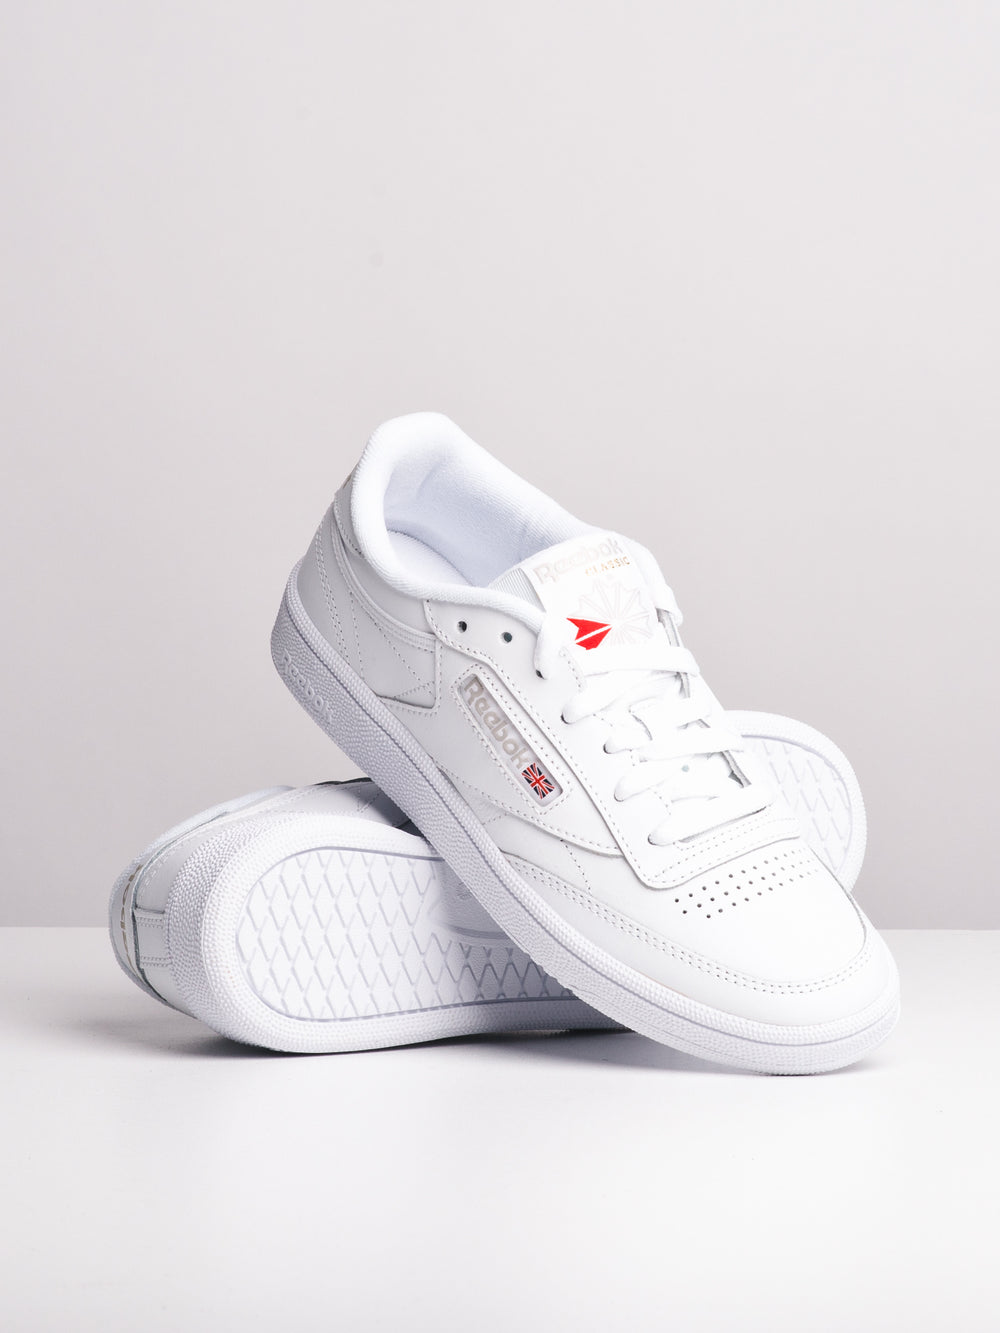 WOMENS CLUB C 85 WHITE/GREY SNEAKERS